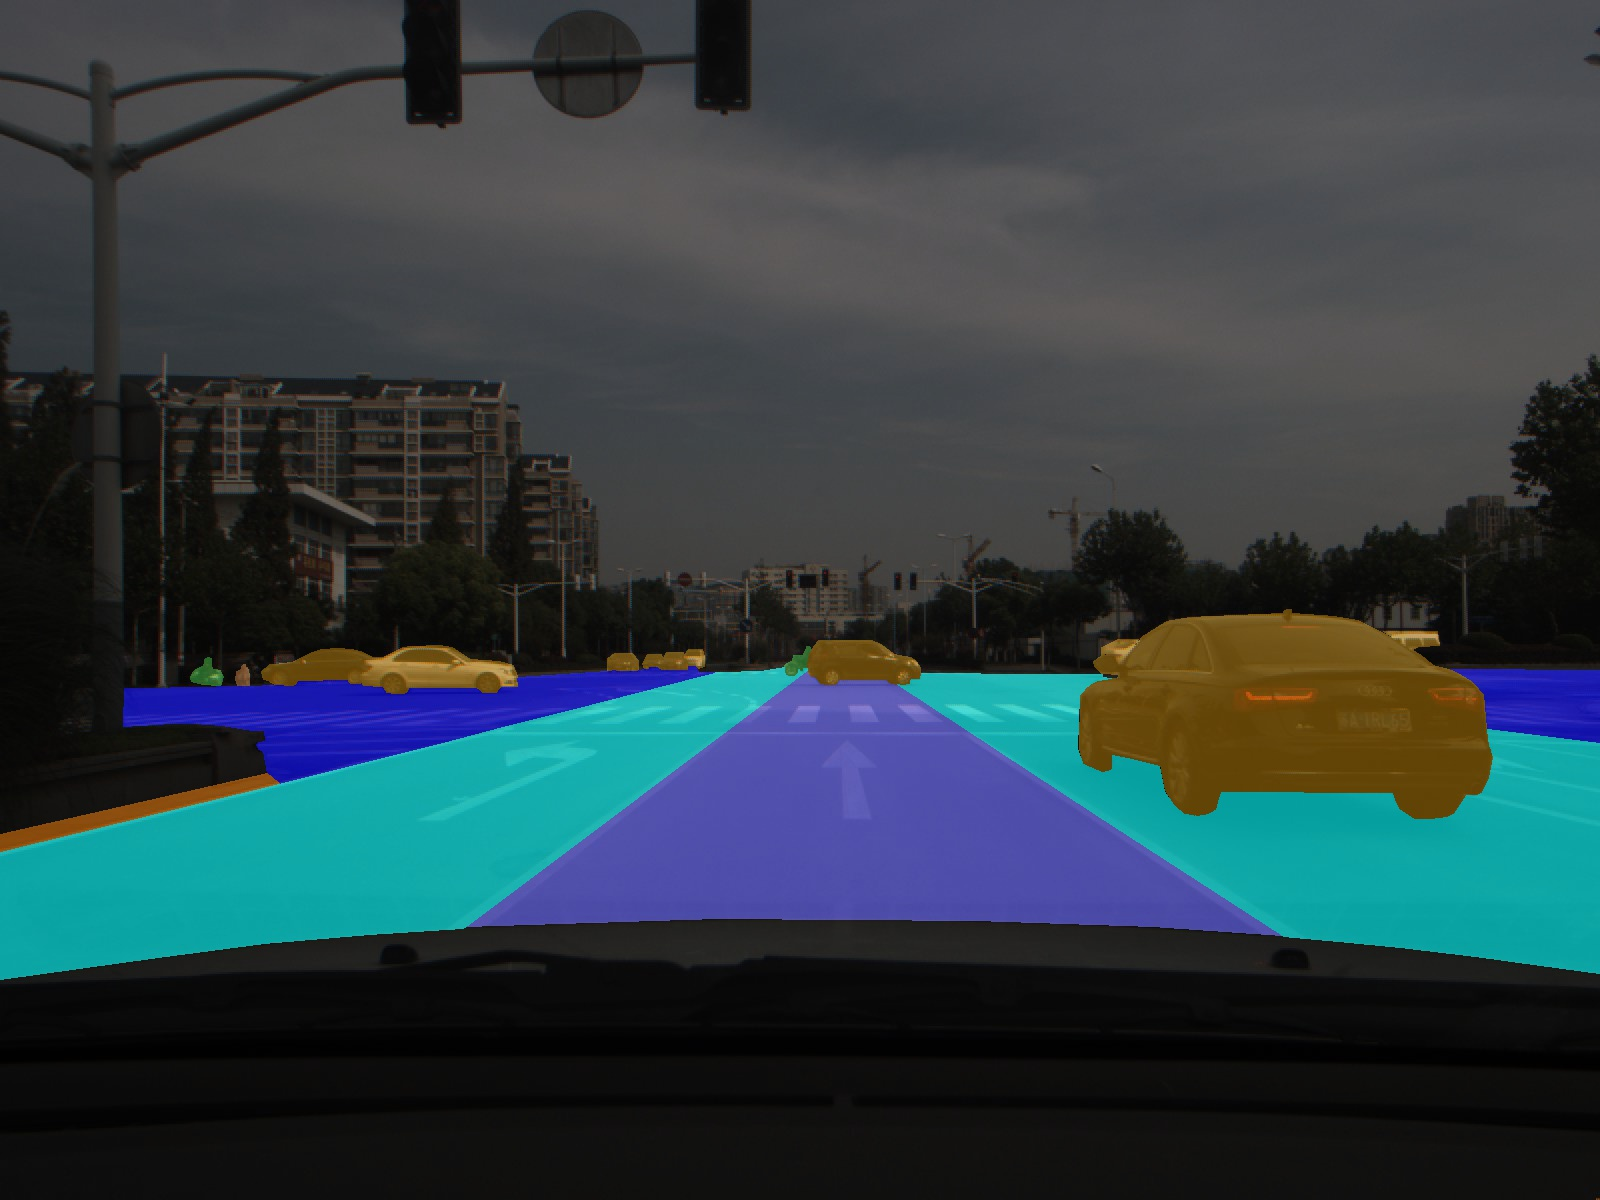 530,000 Streeview Images- 9,876 Images- Precise Multi-categories Annotation Data_Autonomous Driving Data Solution_Datatang